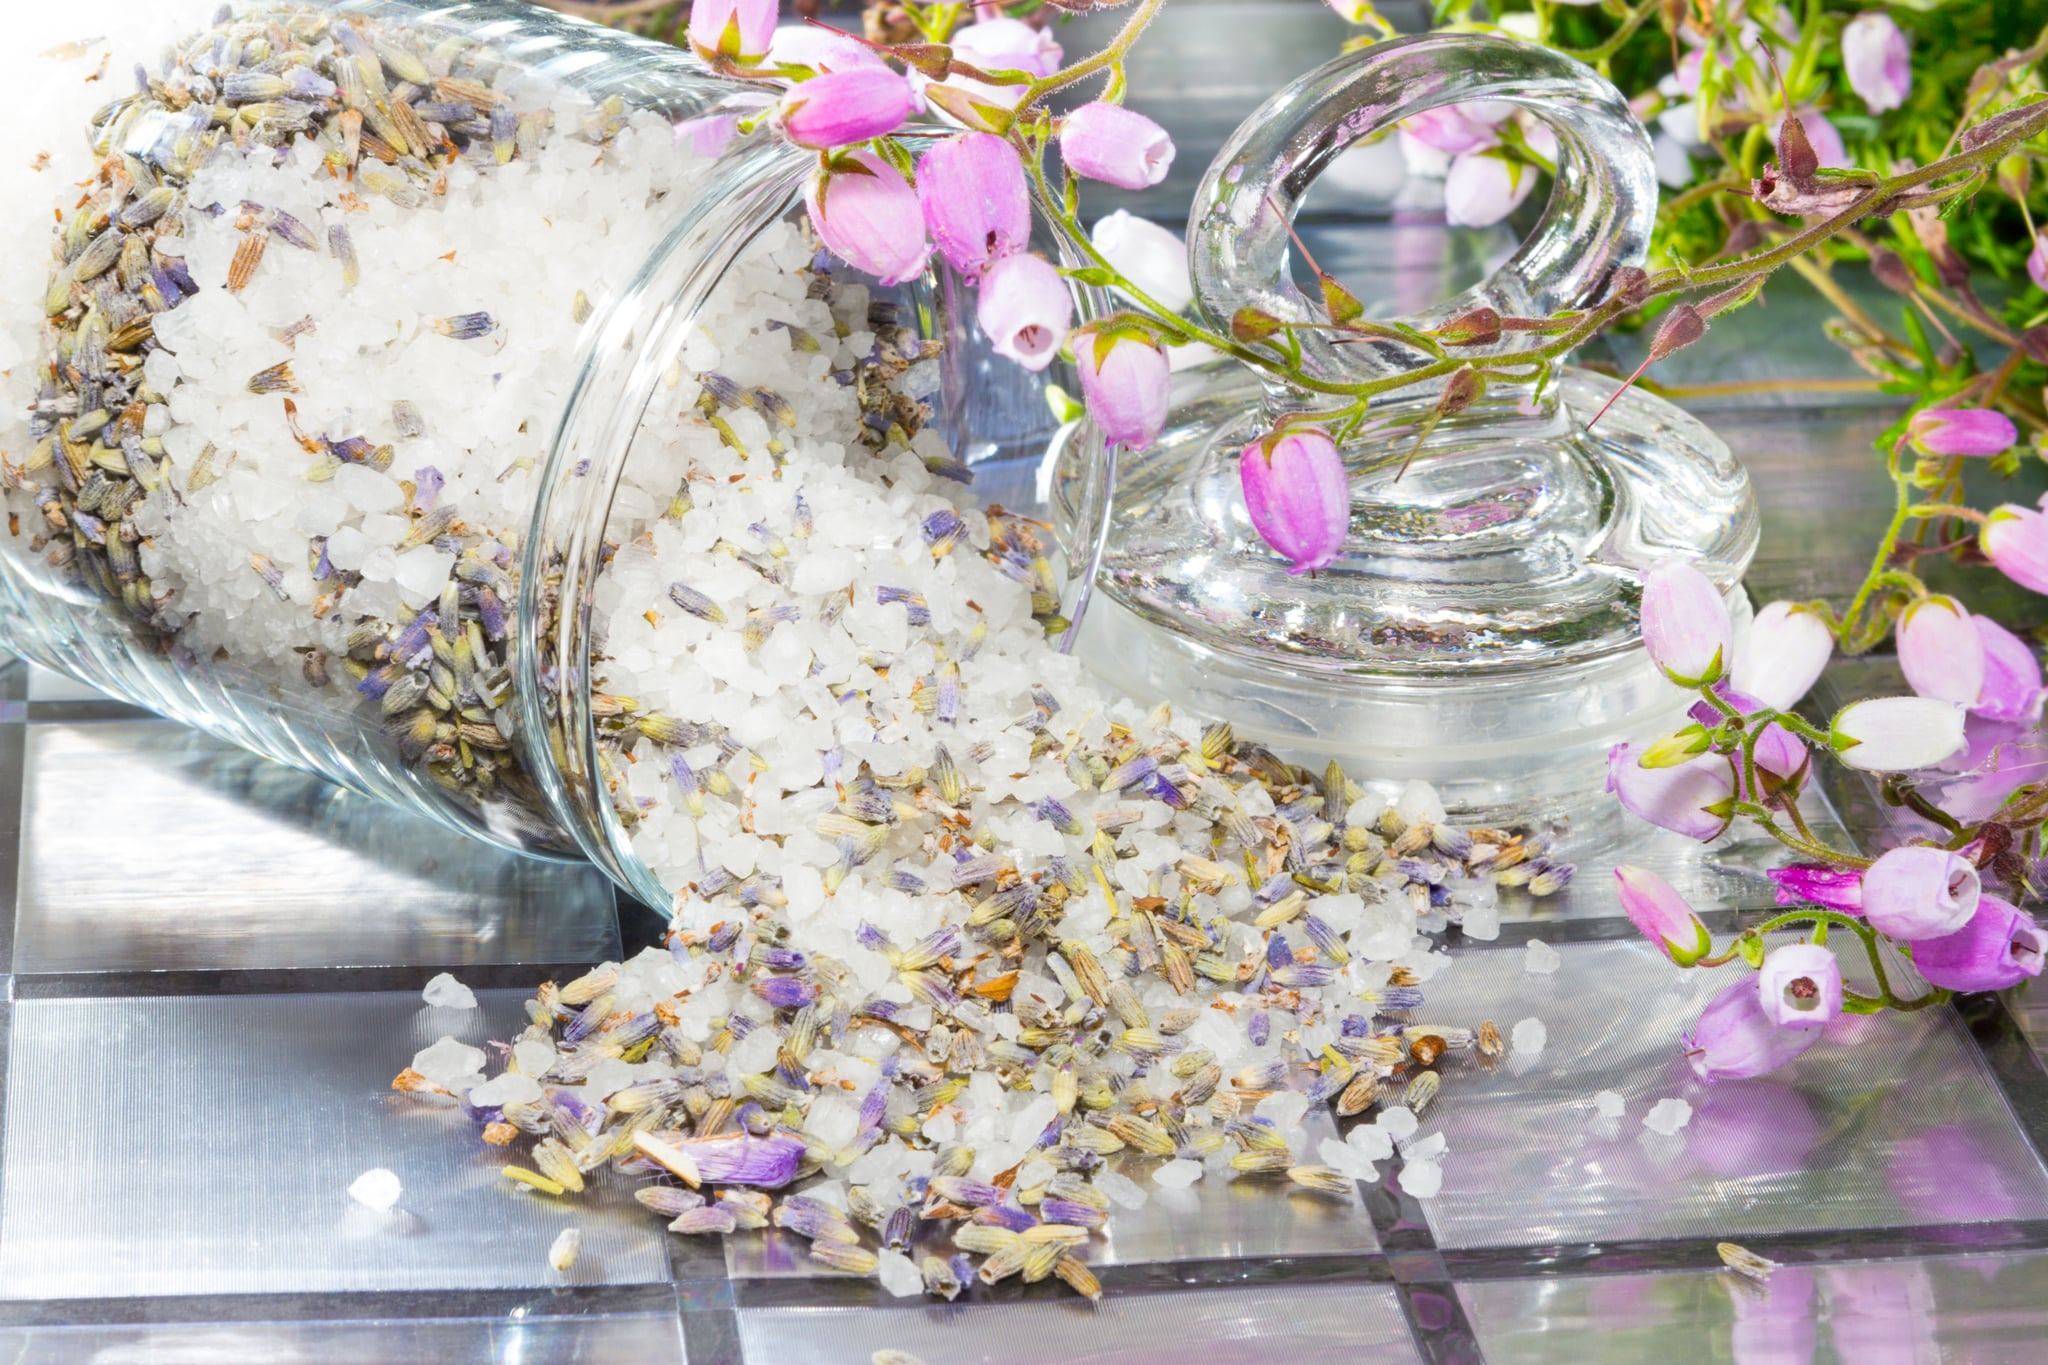 scented potpourri amp floral gifts fragrancing the home with natural aromatics